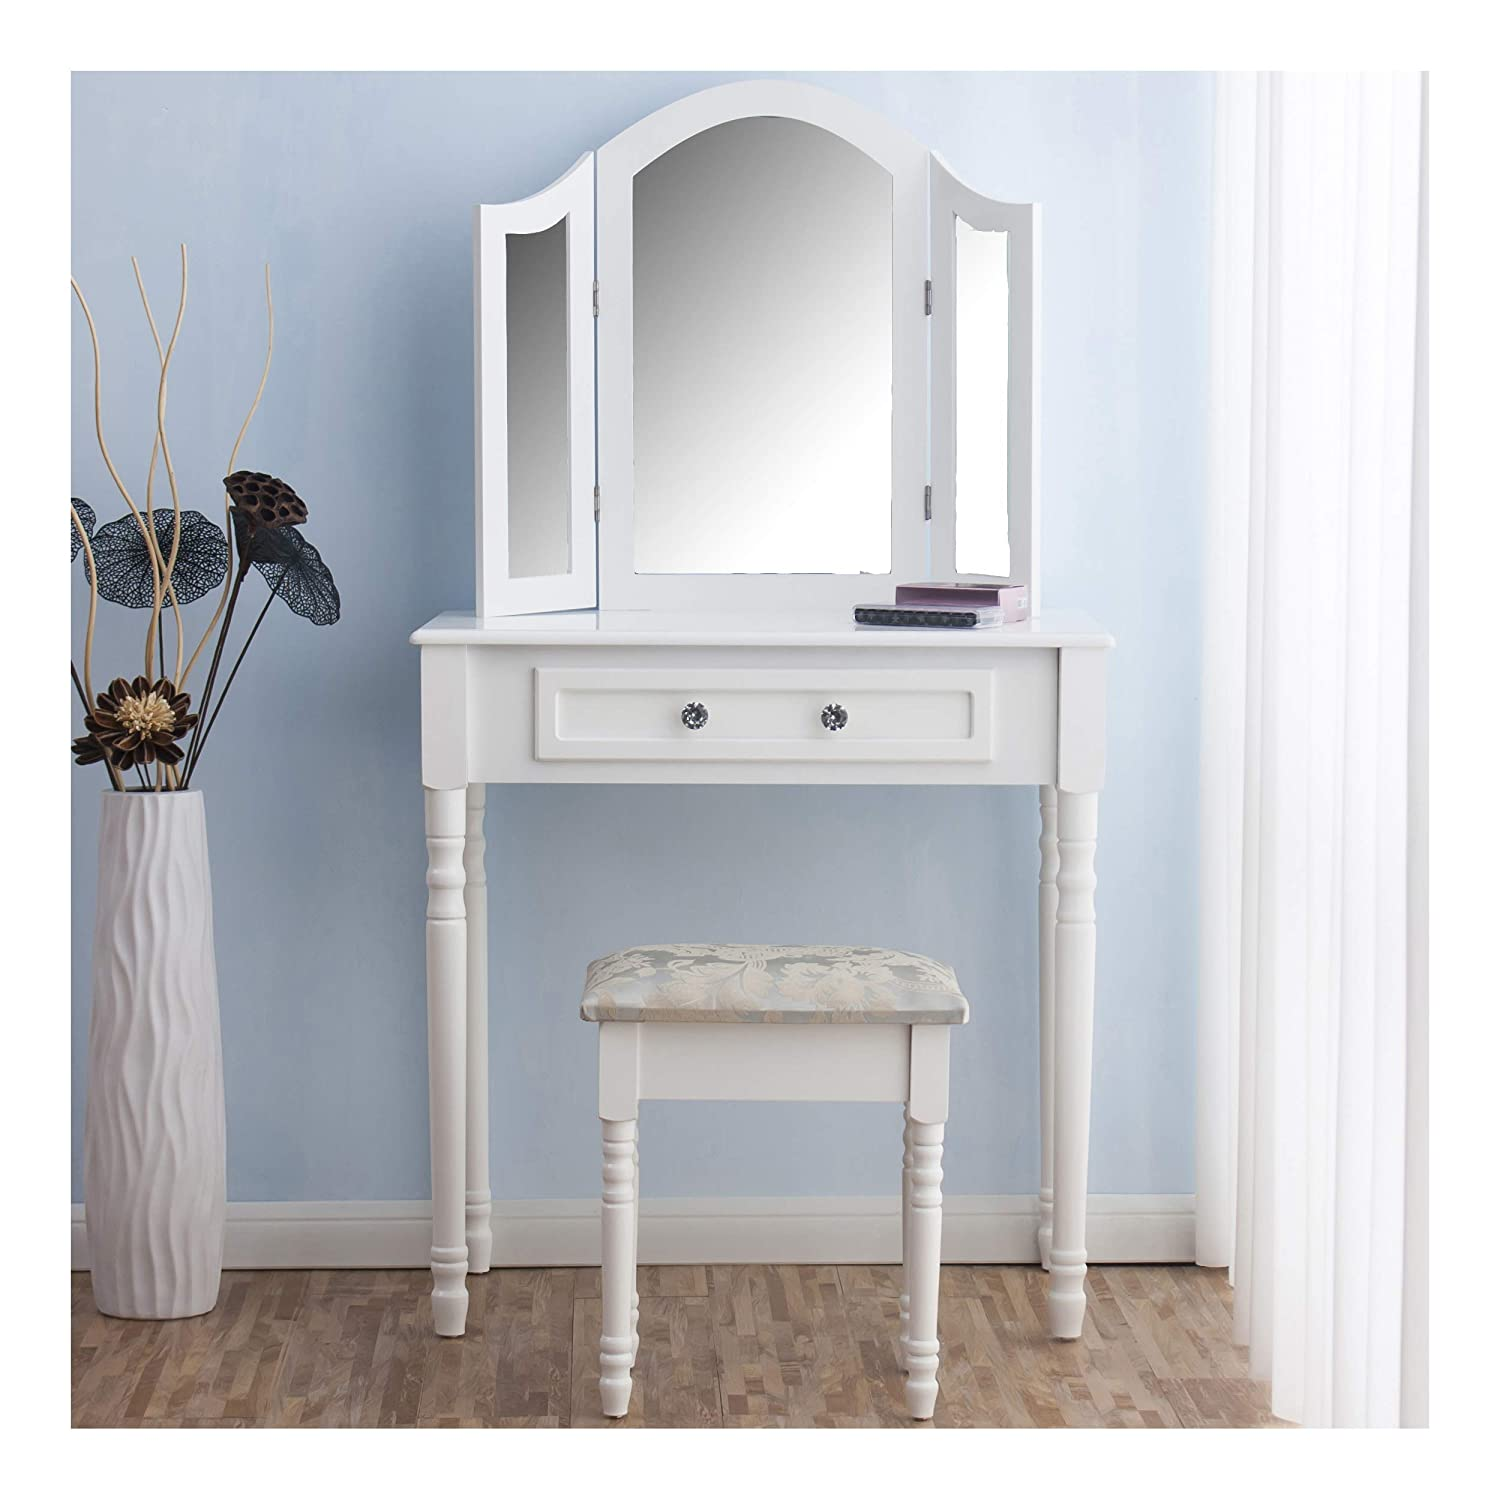 CherryTree Furniture Dressing Table 3 Way Mirrors Triple Mirror Makeup Dresser Set with Stool (White) Cherry Tree Furniture